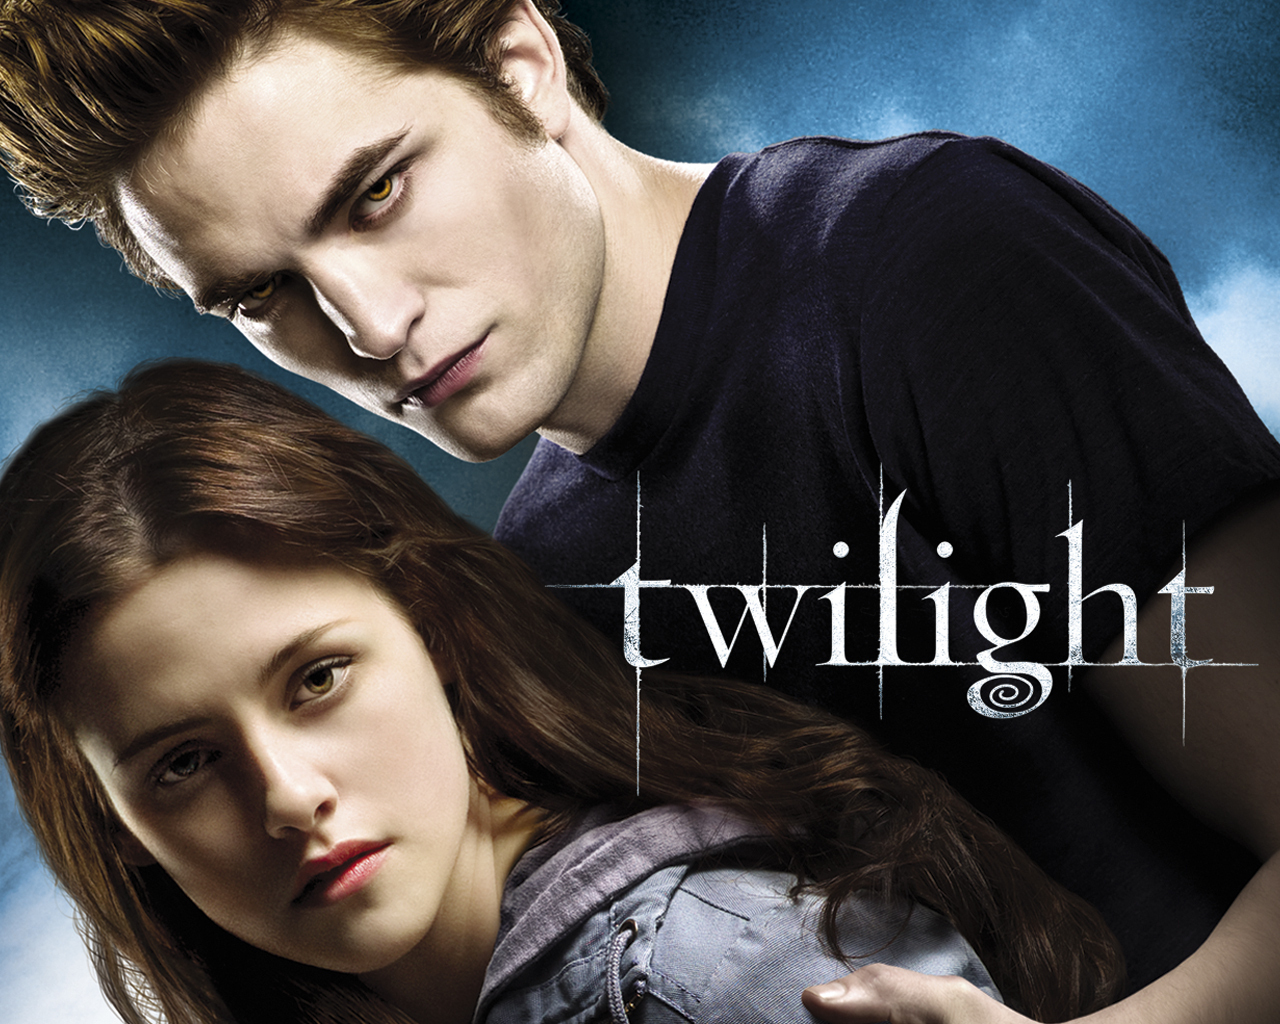 https://i1.wp.com/images2.fanpop.com/images/photos/6600000/Edward-and-Bella-edward-and-bella-cullen-vampires-6612938-1280-1024.jpg